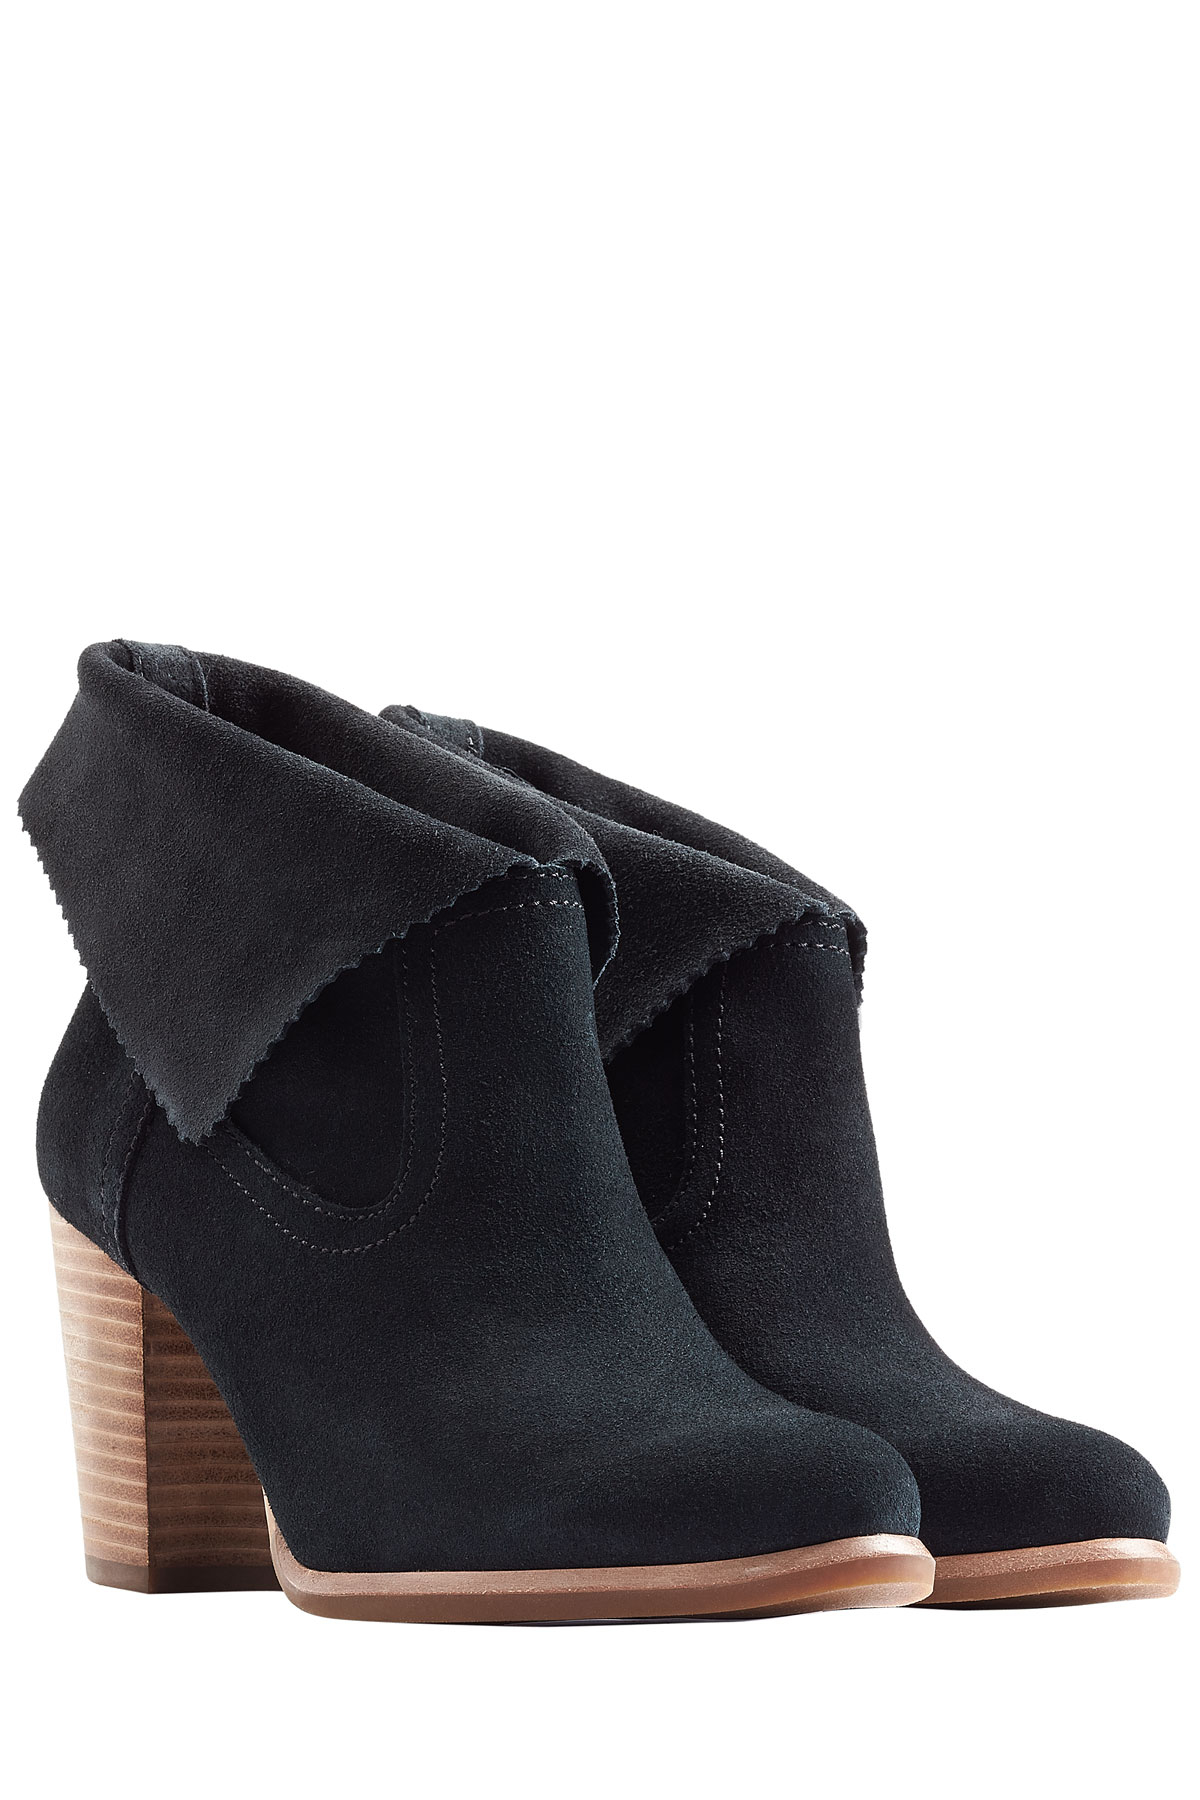 Womens Boots UGG Thames Black Suede